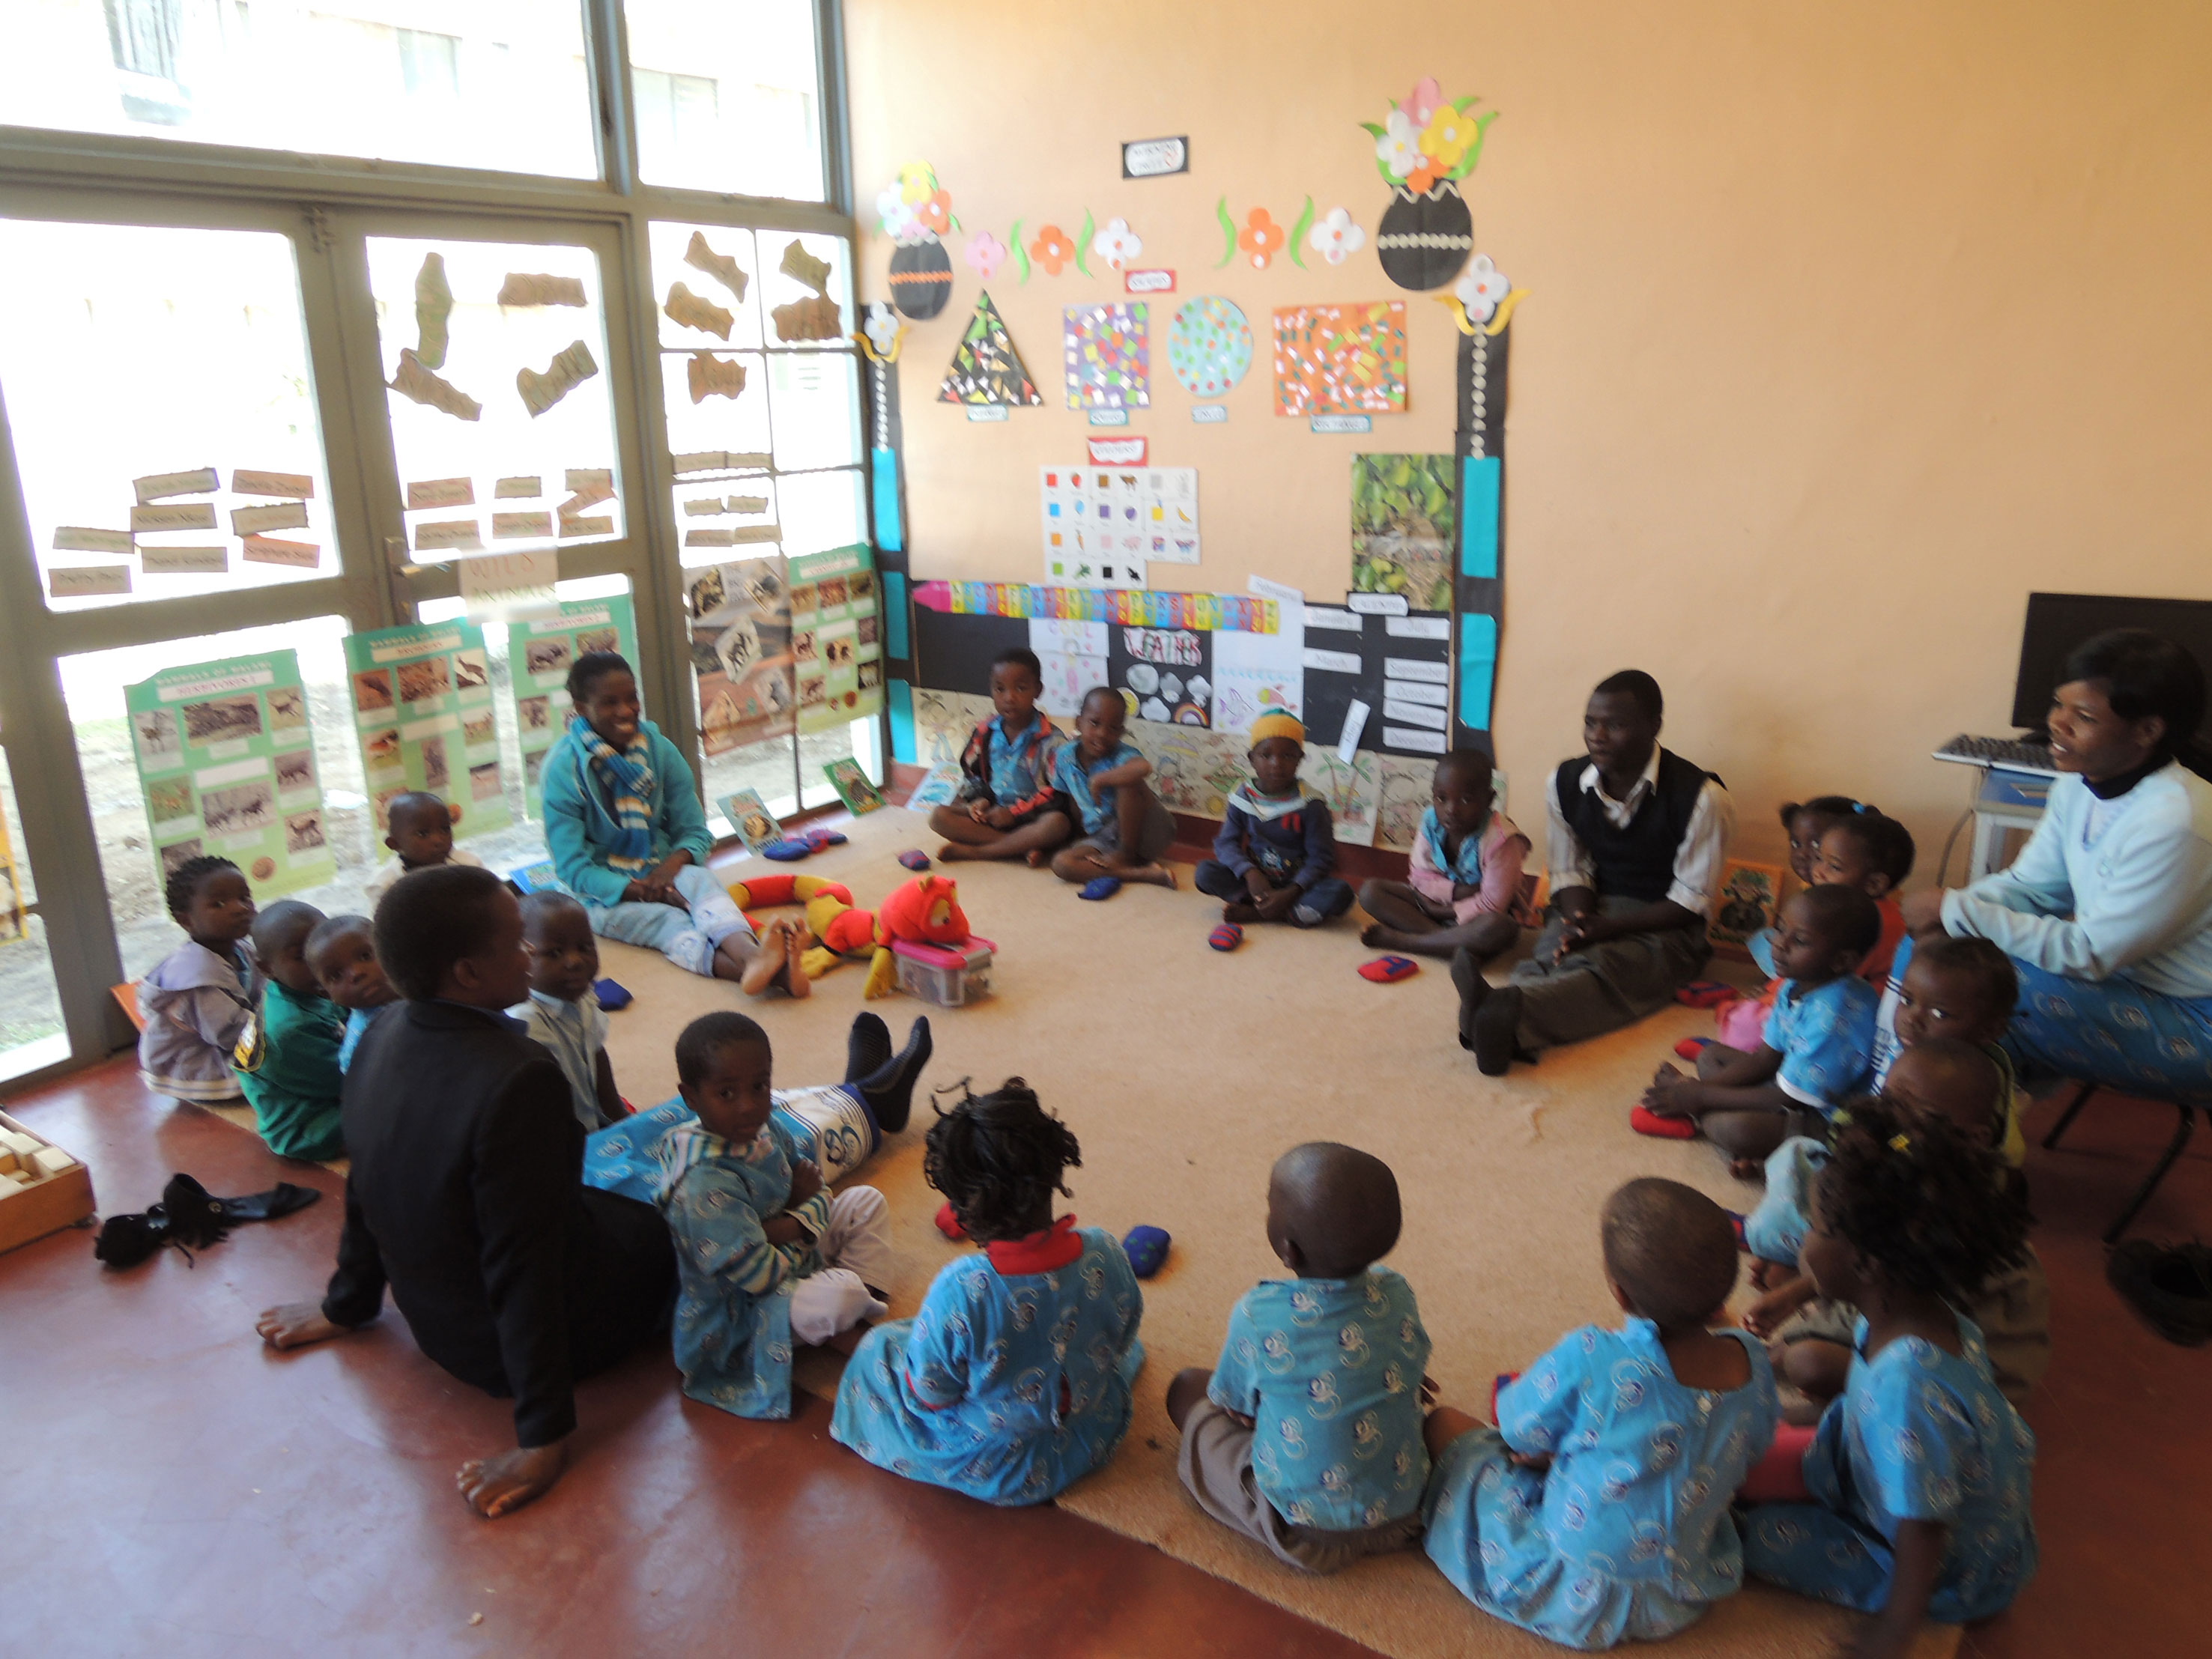 Learning in the pre-school room